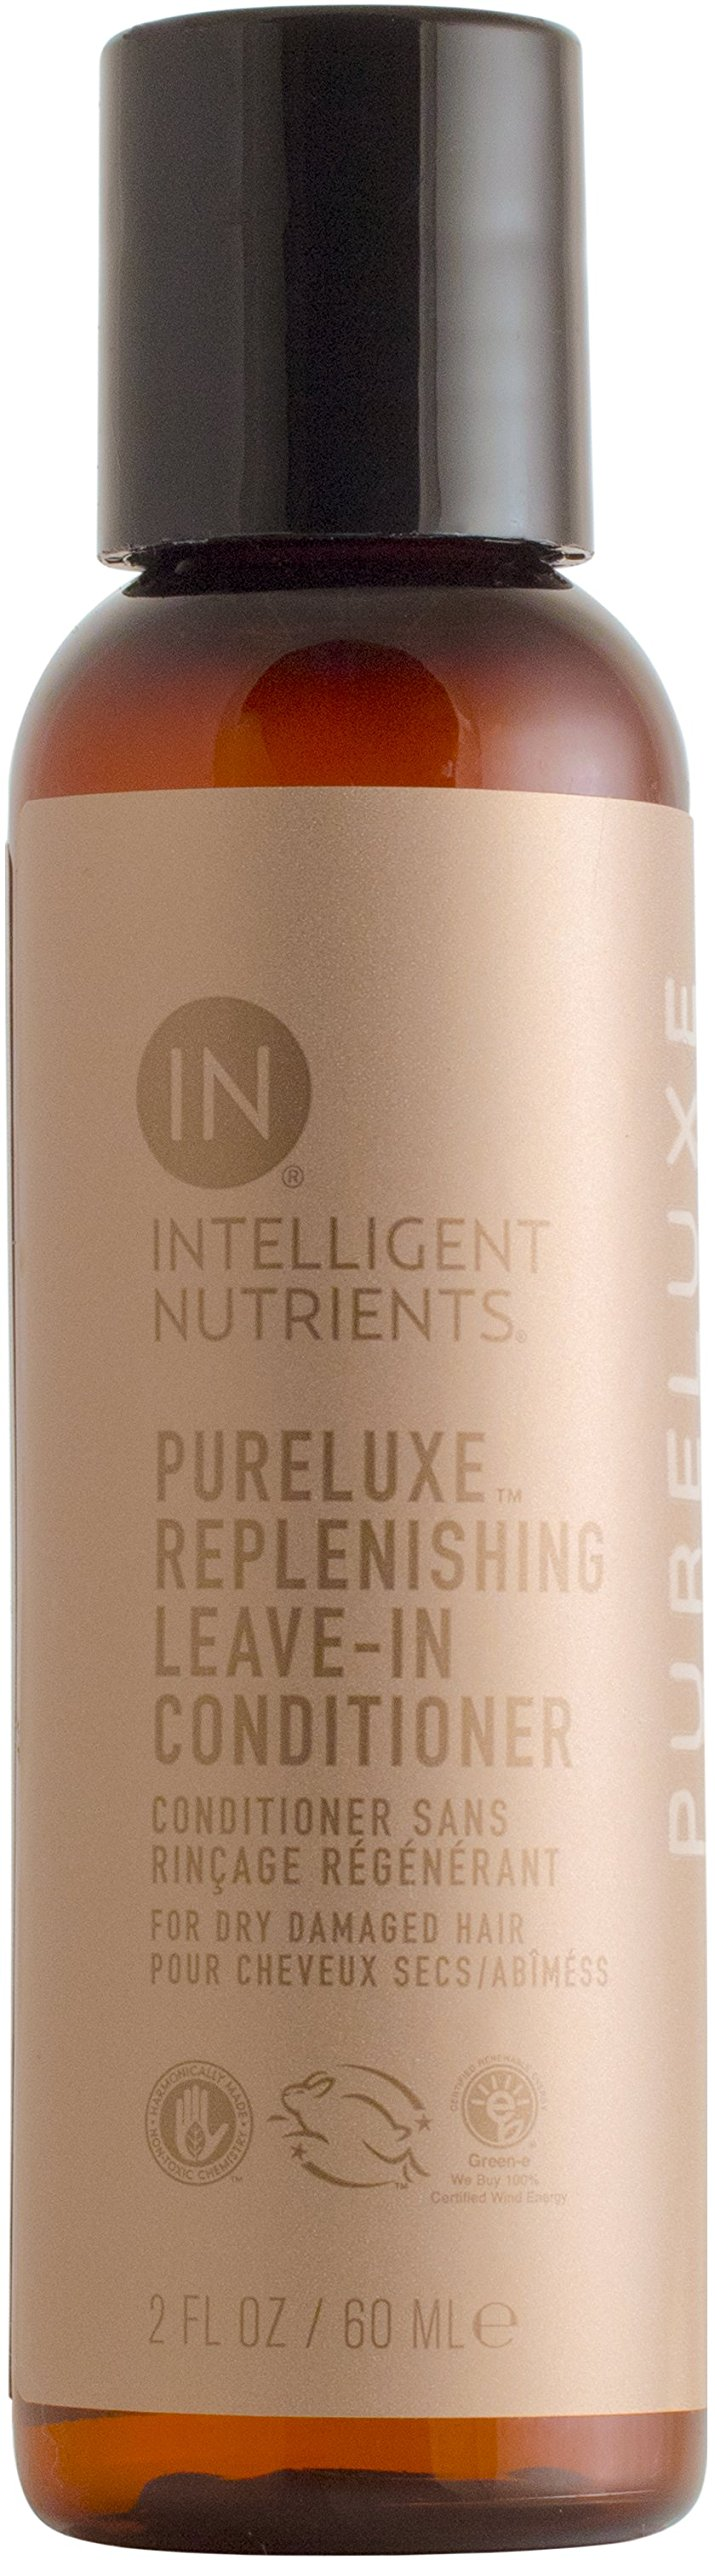 Intelligent Nutrients - PureLuxe Replenishing Leave-In Conditioner TRAVEL